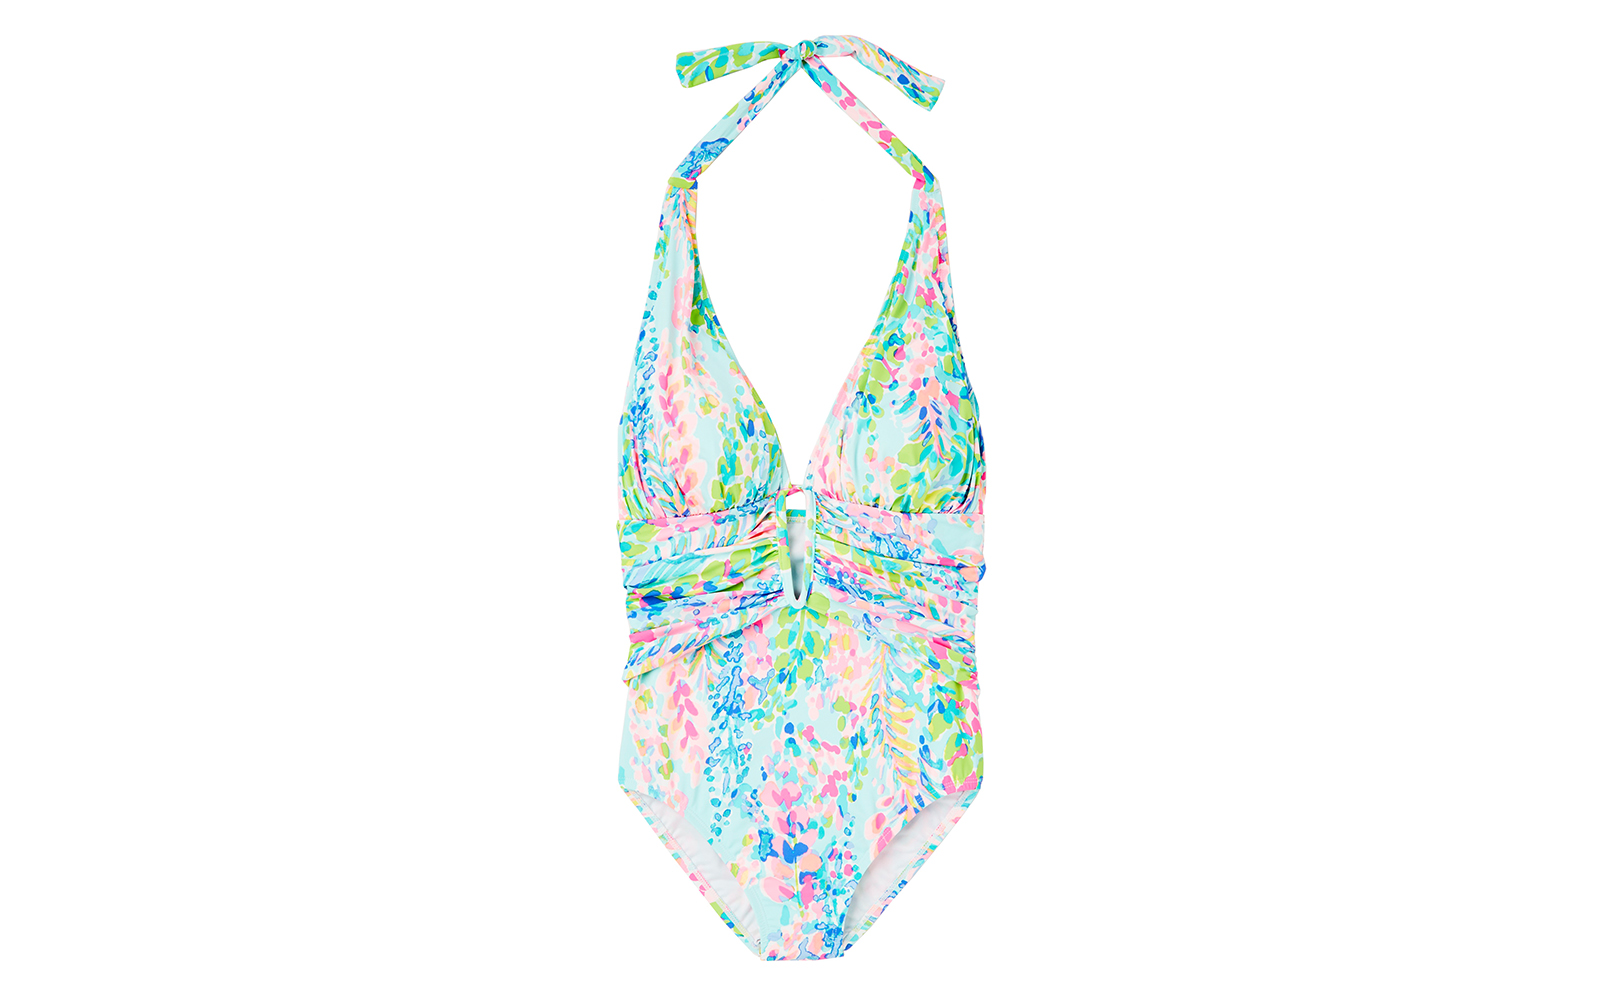 dd215d5843 Lilly Pulitzer's First-ever Swimsuit Collection Is Finally Here ...